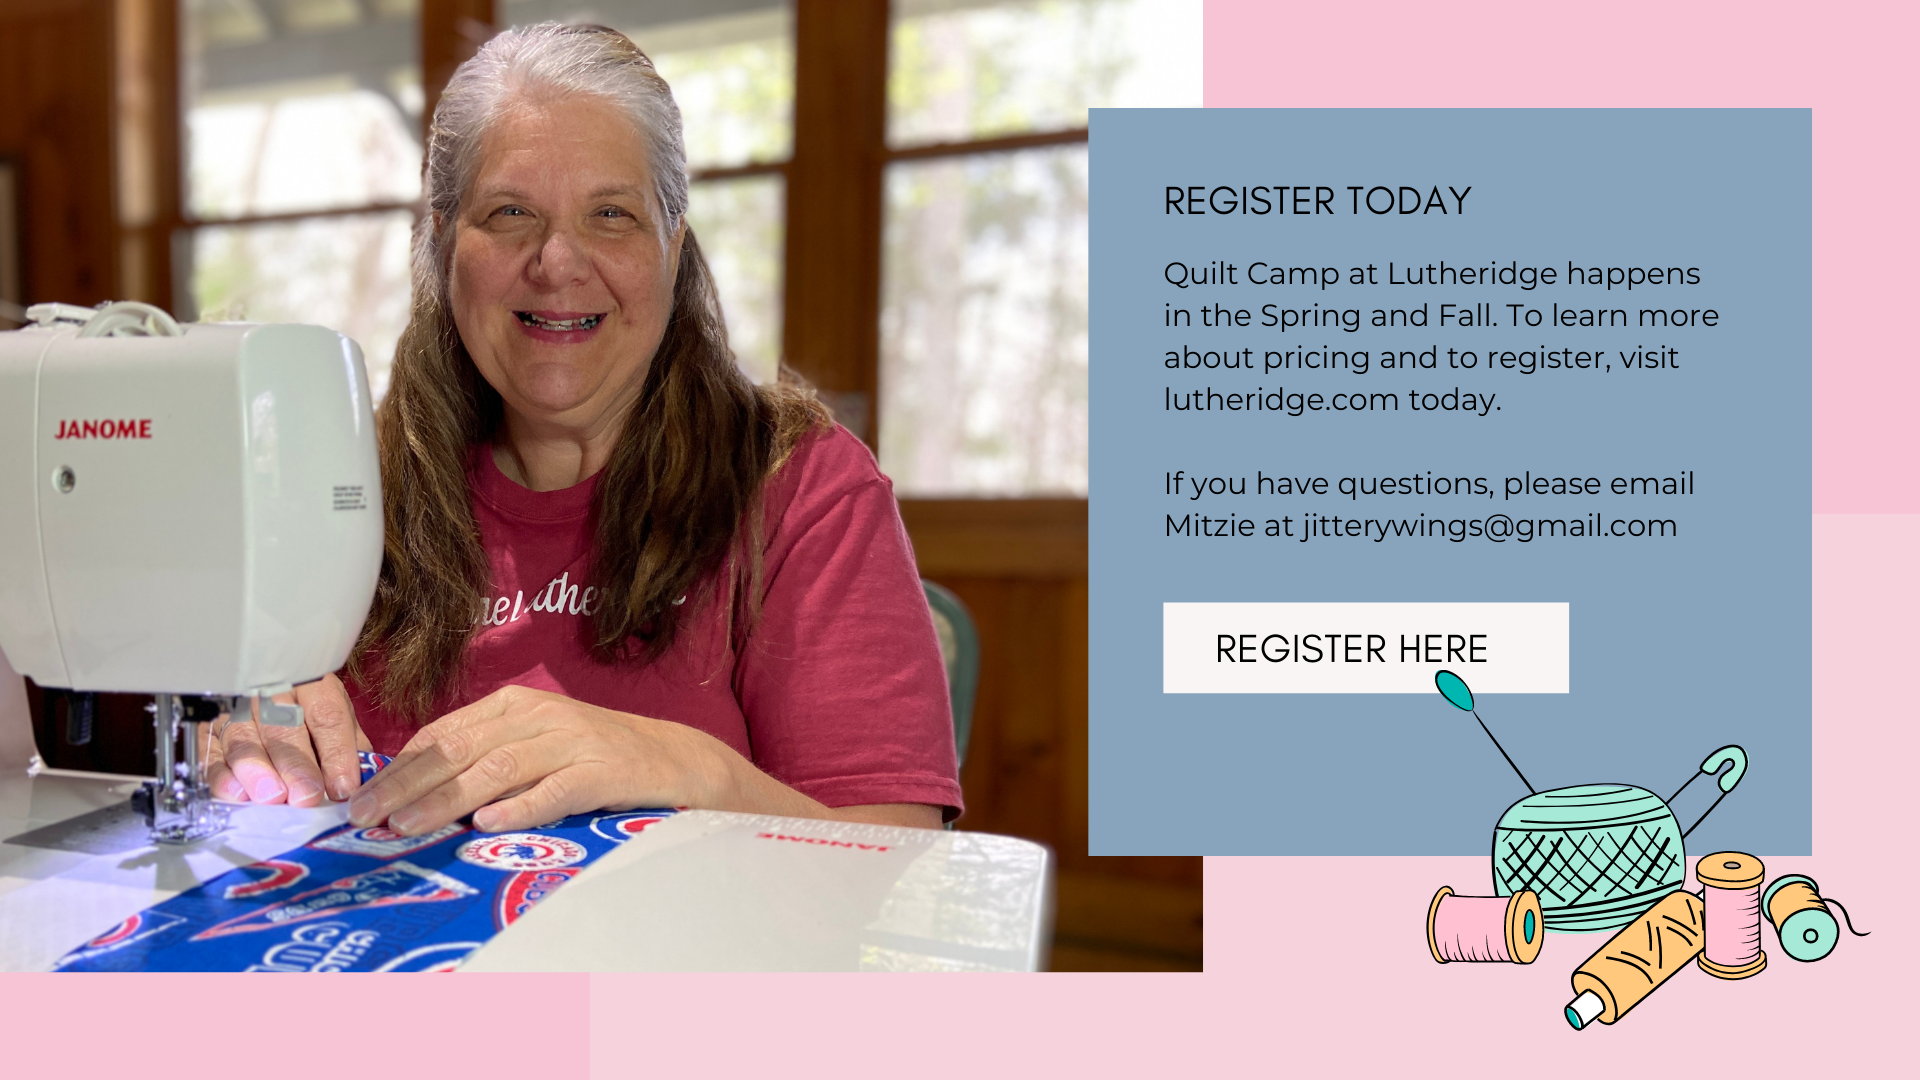 quilt camp at lutheridge, learn more about quilt camp at lutheridge